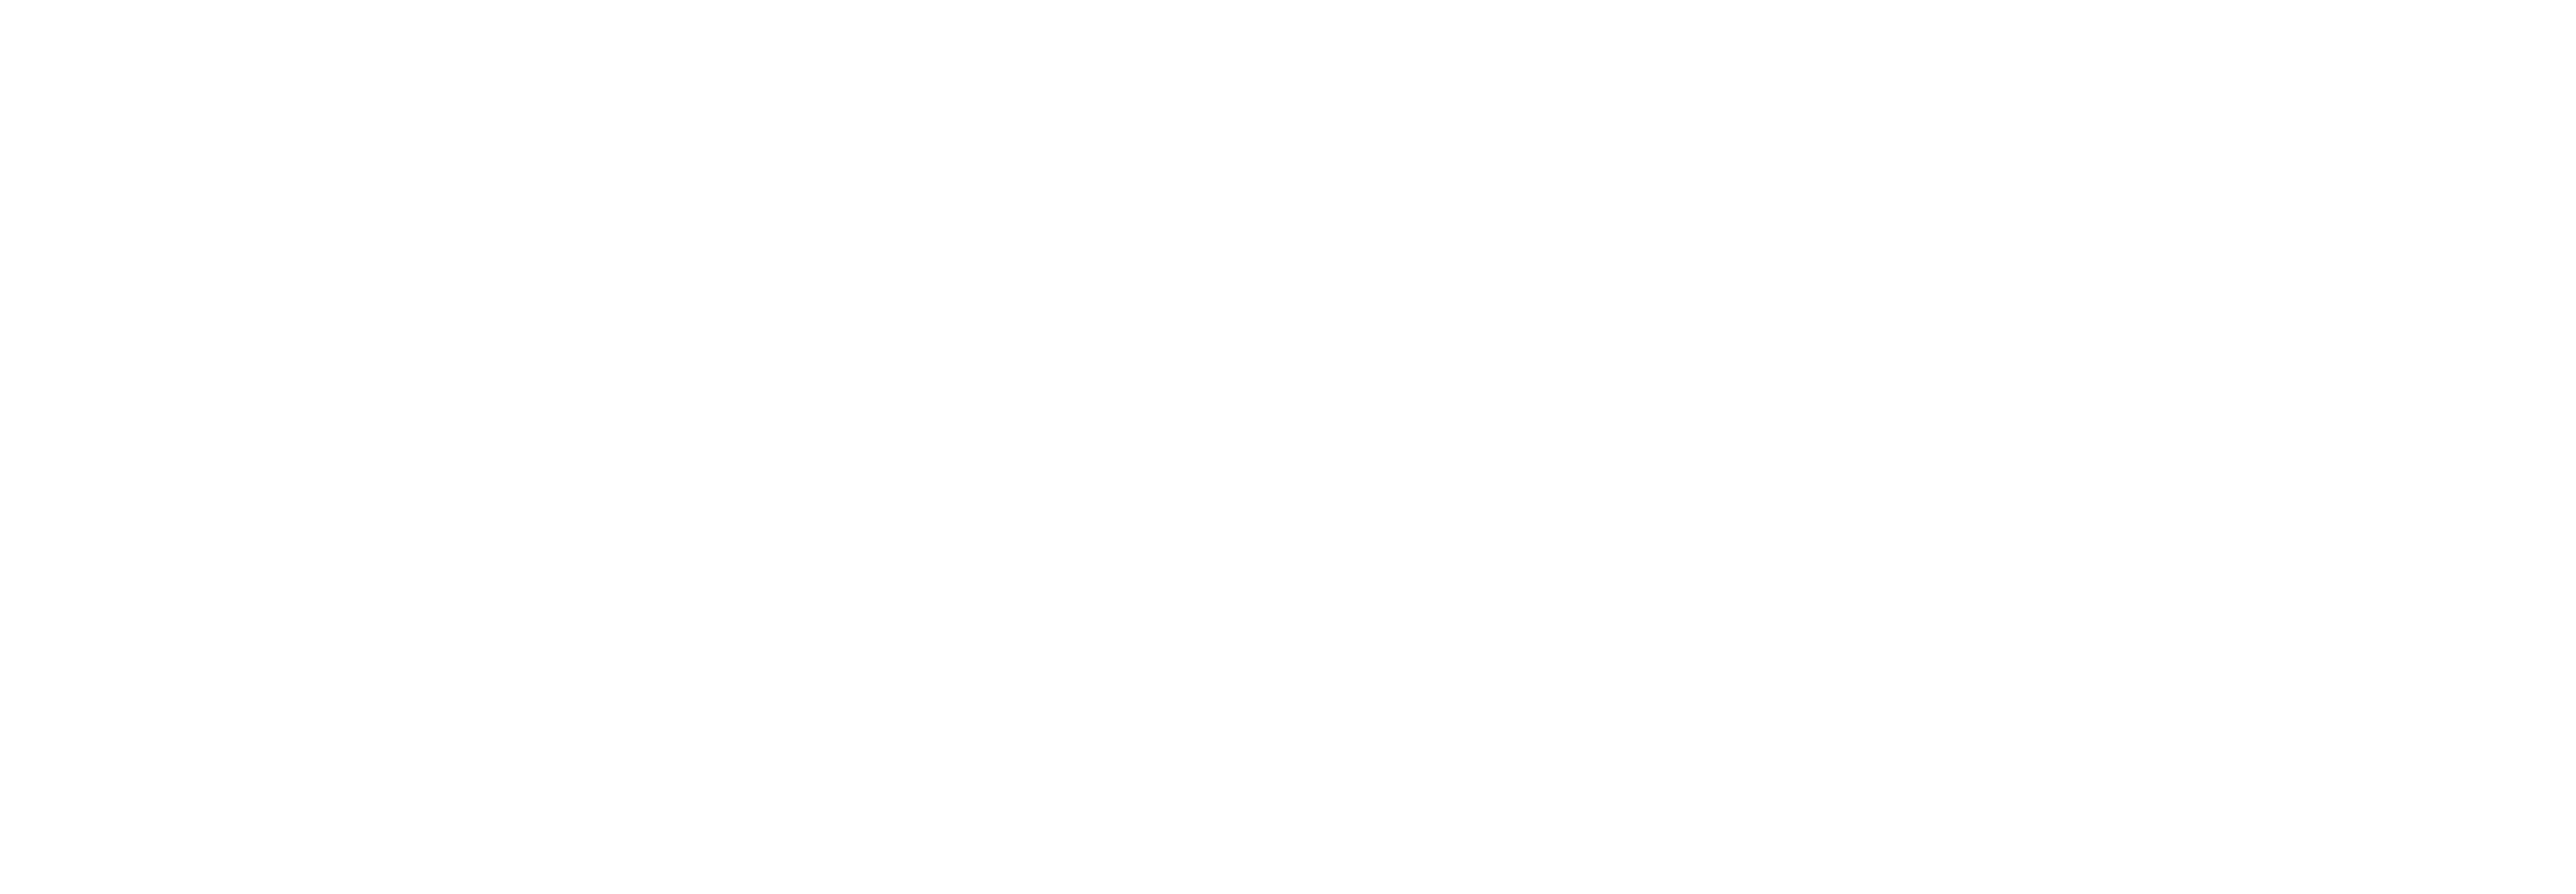 Download Prior To Joining Uber, Sam Was Head Of Compensation - New Uber Logo  2018 - Full Size PNG Image - PNGkit